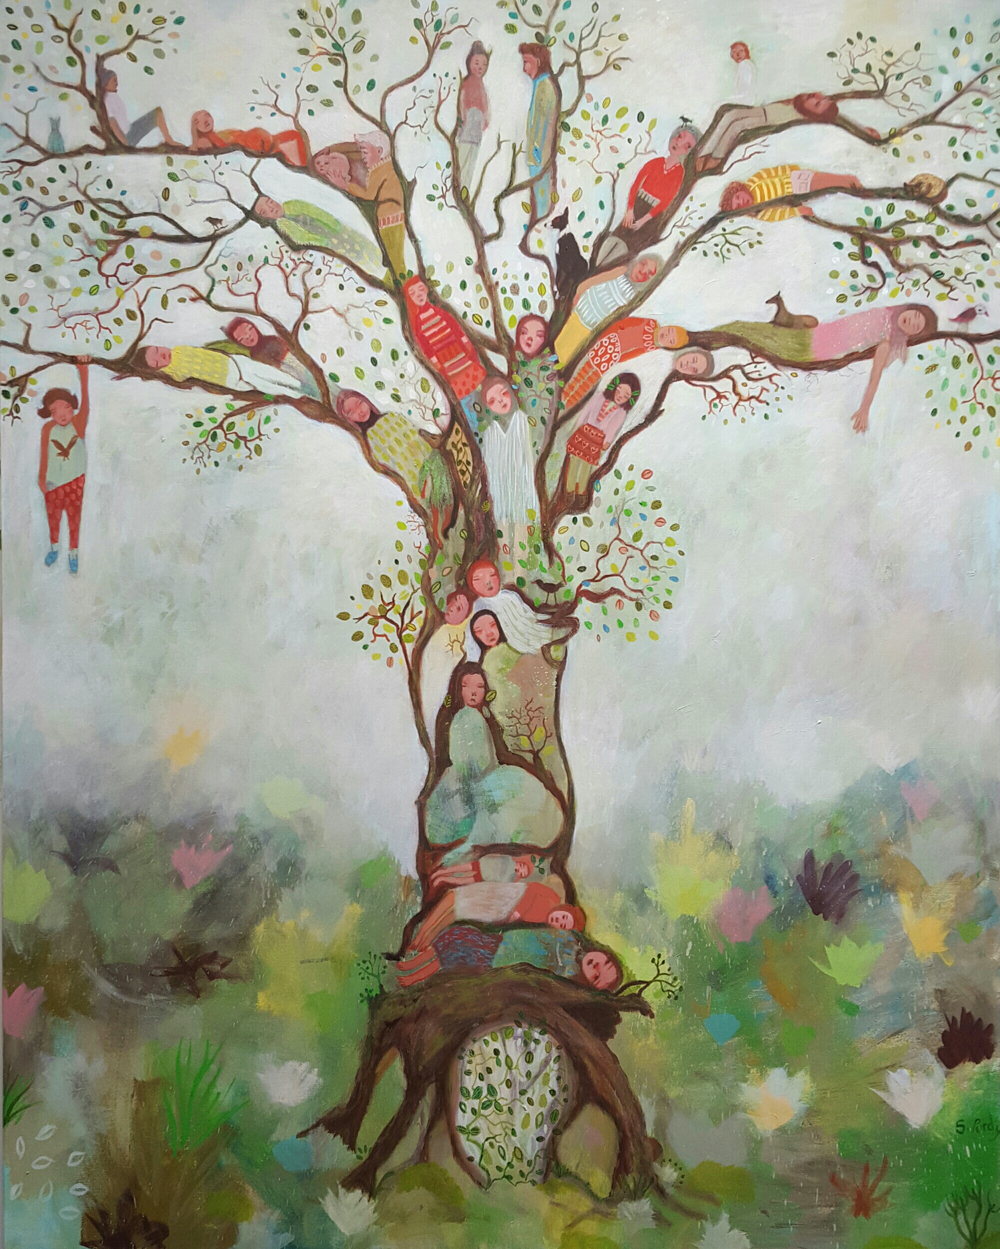 'Dreamaway Tree' by Siobhan Purdy